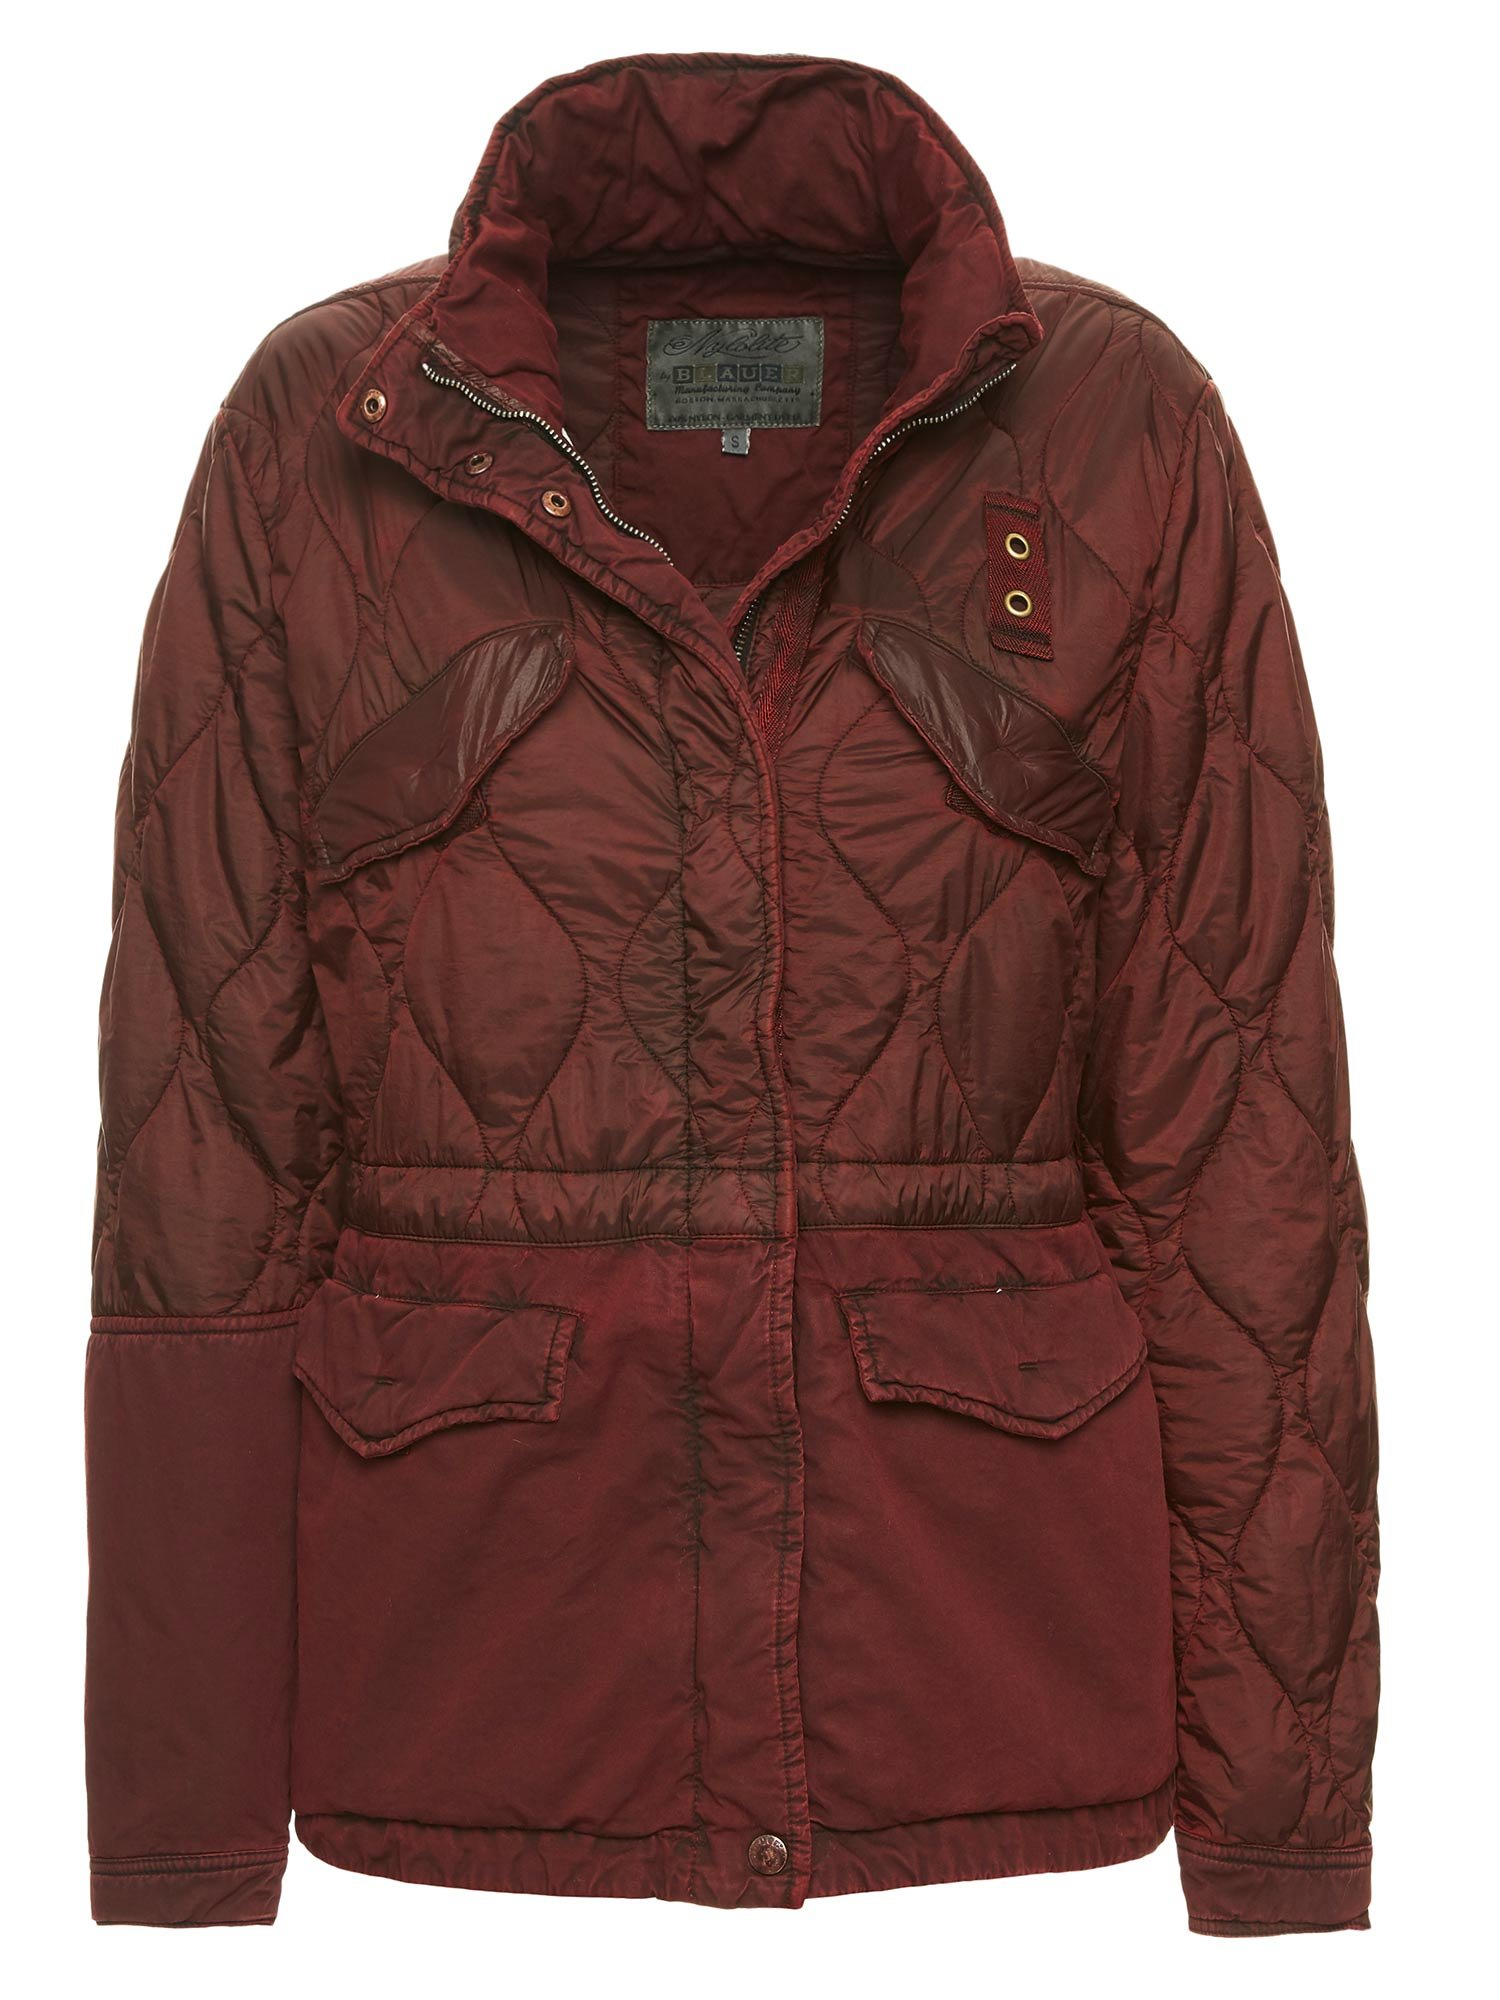 PATCHWORK-JACKE MILITARY LIV - Beaver Brown - Blauer